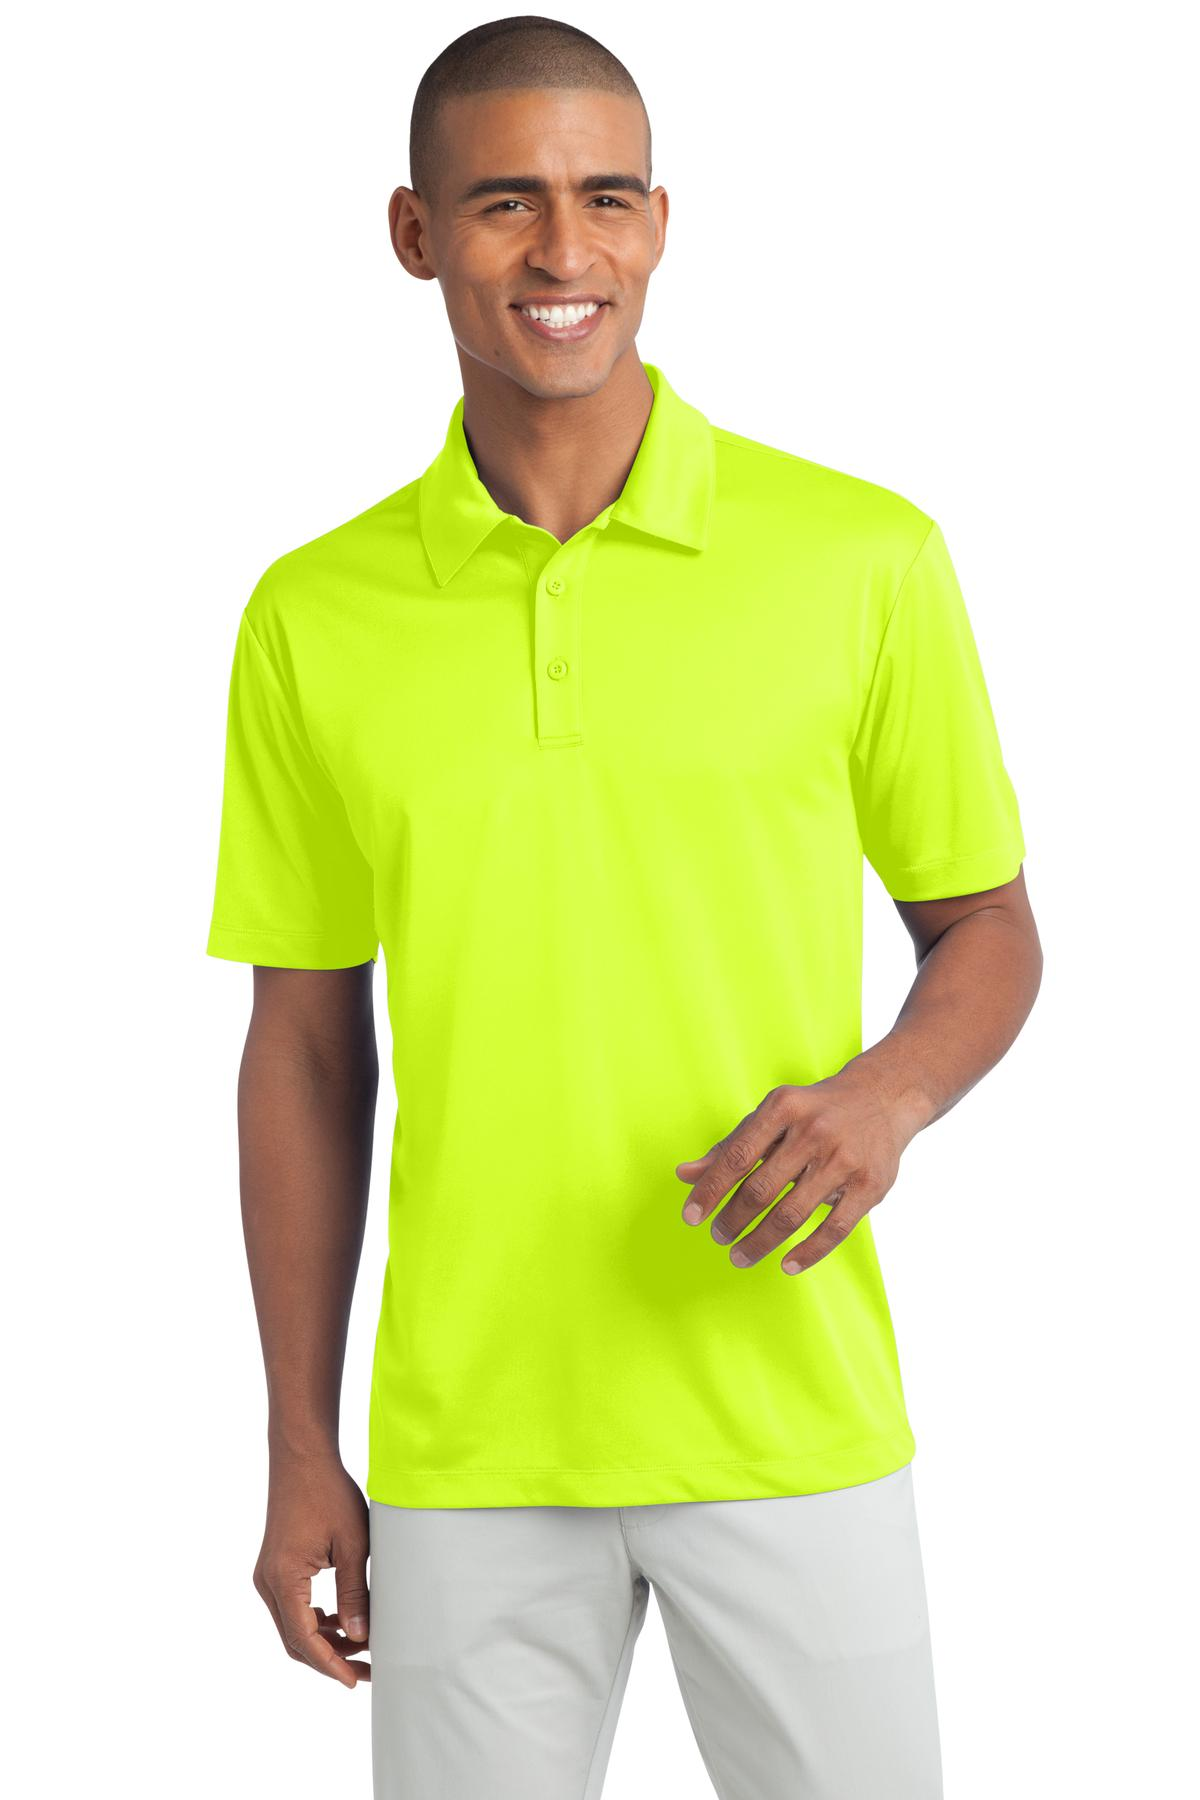 ef4d6ccd Port Authority® Tall Silk Touch™ Performance Polo. Tlk540 Neon ...